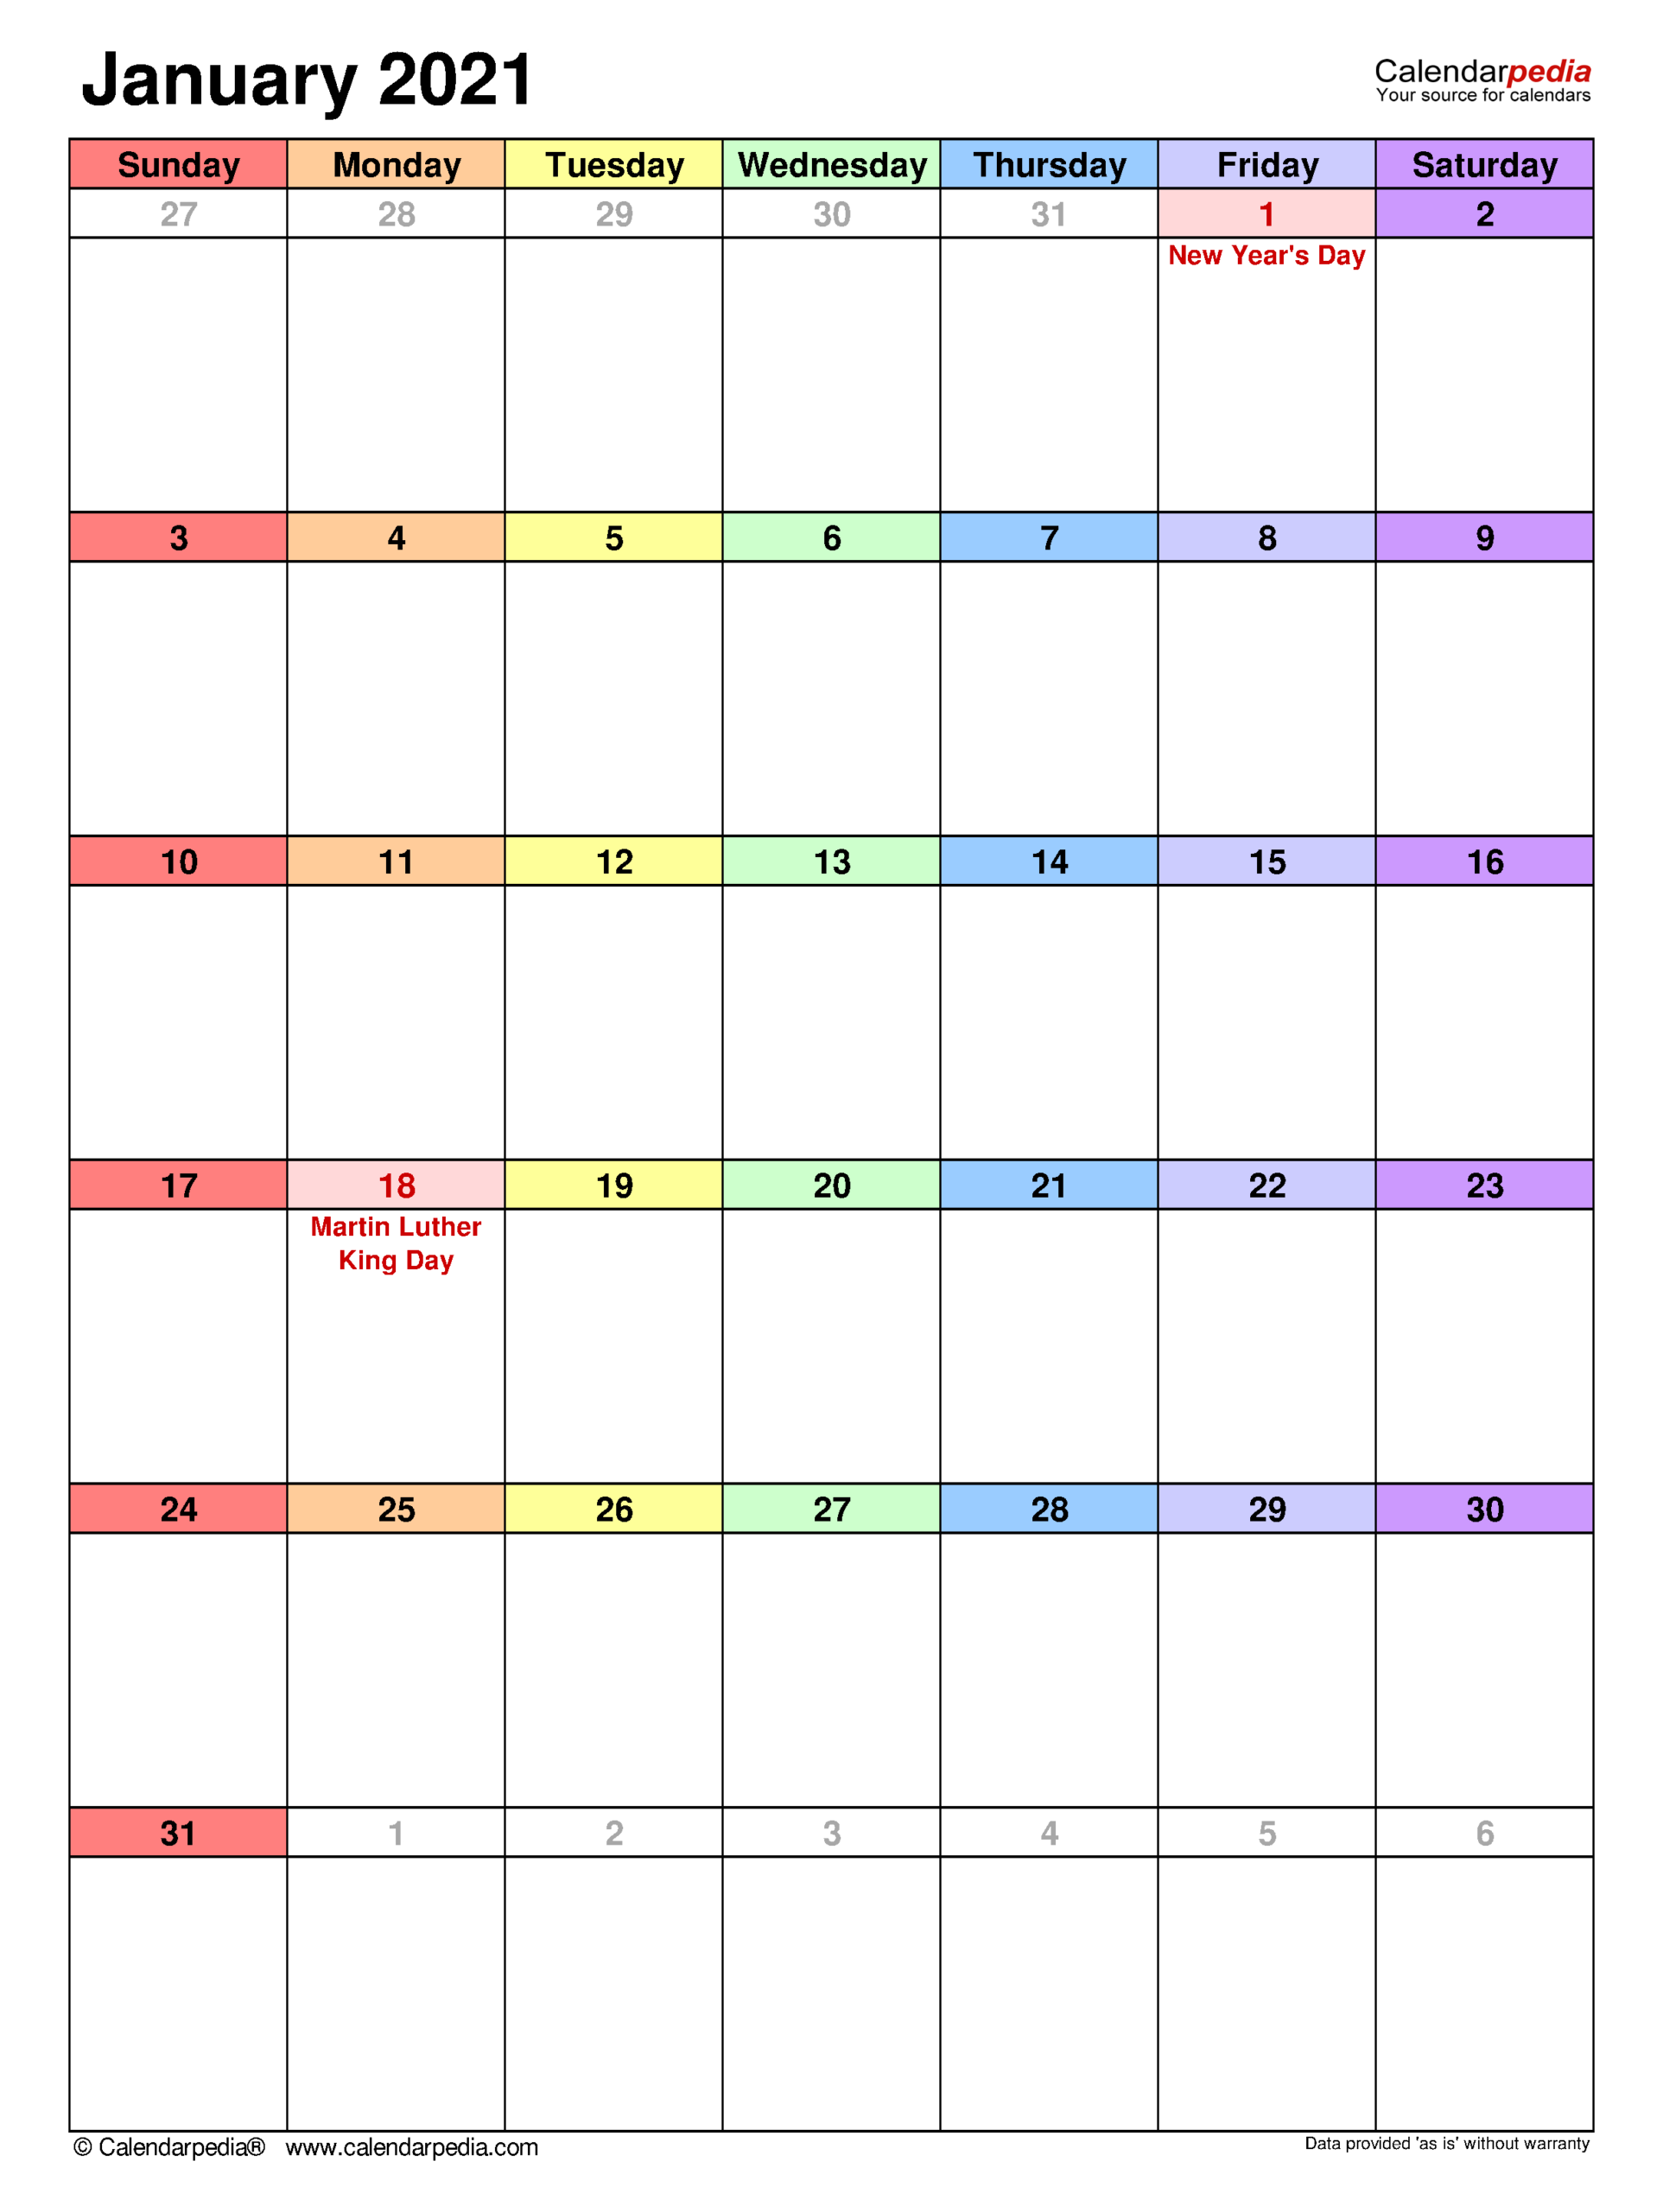 January 2021 Calendar | Templates For Word, Excel And Pdf with 2021 Shift Calendar Free